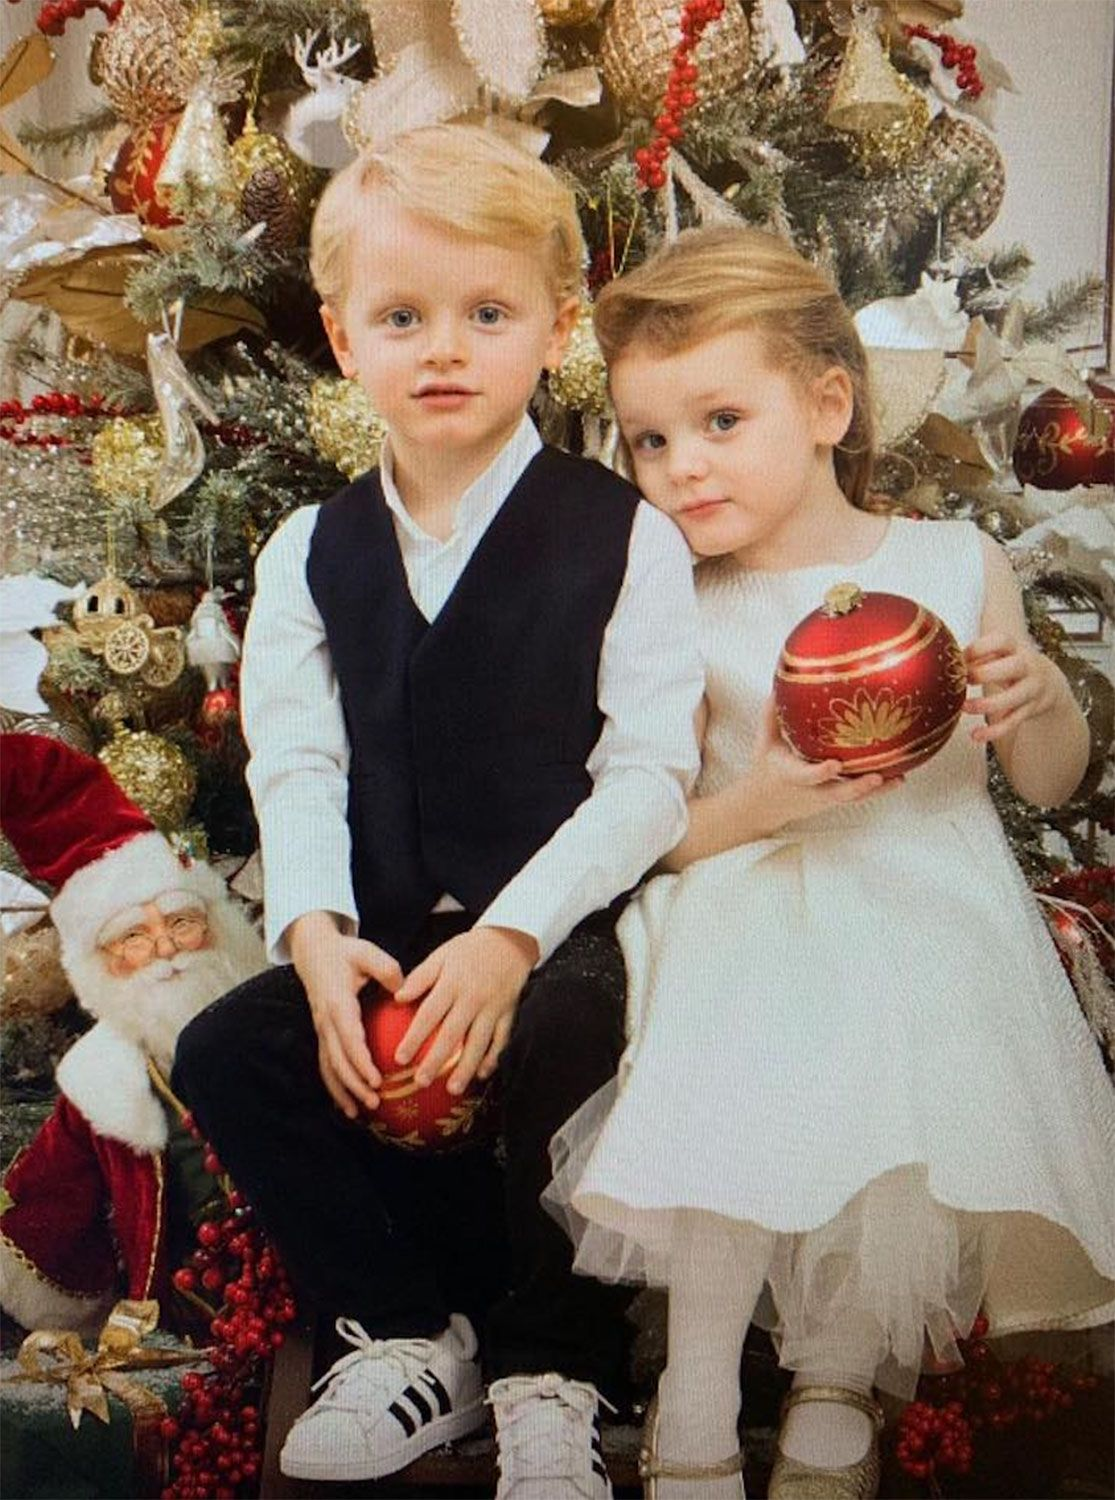 Monaco Twins Prince Jacques and Princess Gabriella Are Ready for Christmas!  See the Cute Portrait | Princess charlene, Princess grace, Monaco royal  family